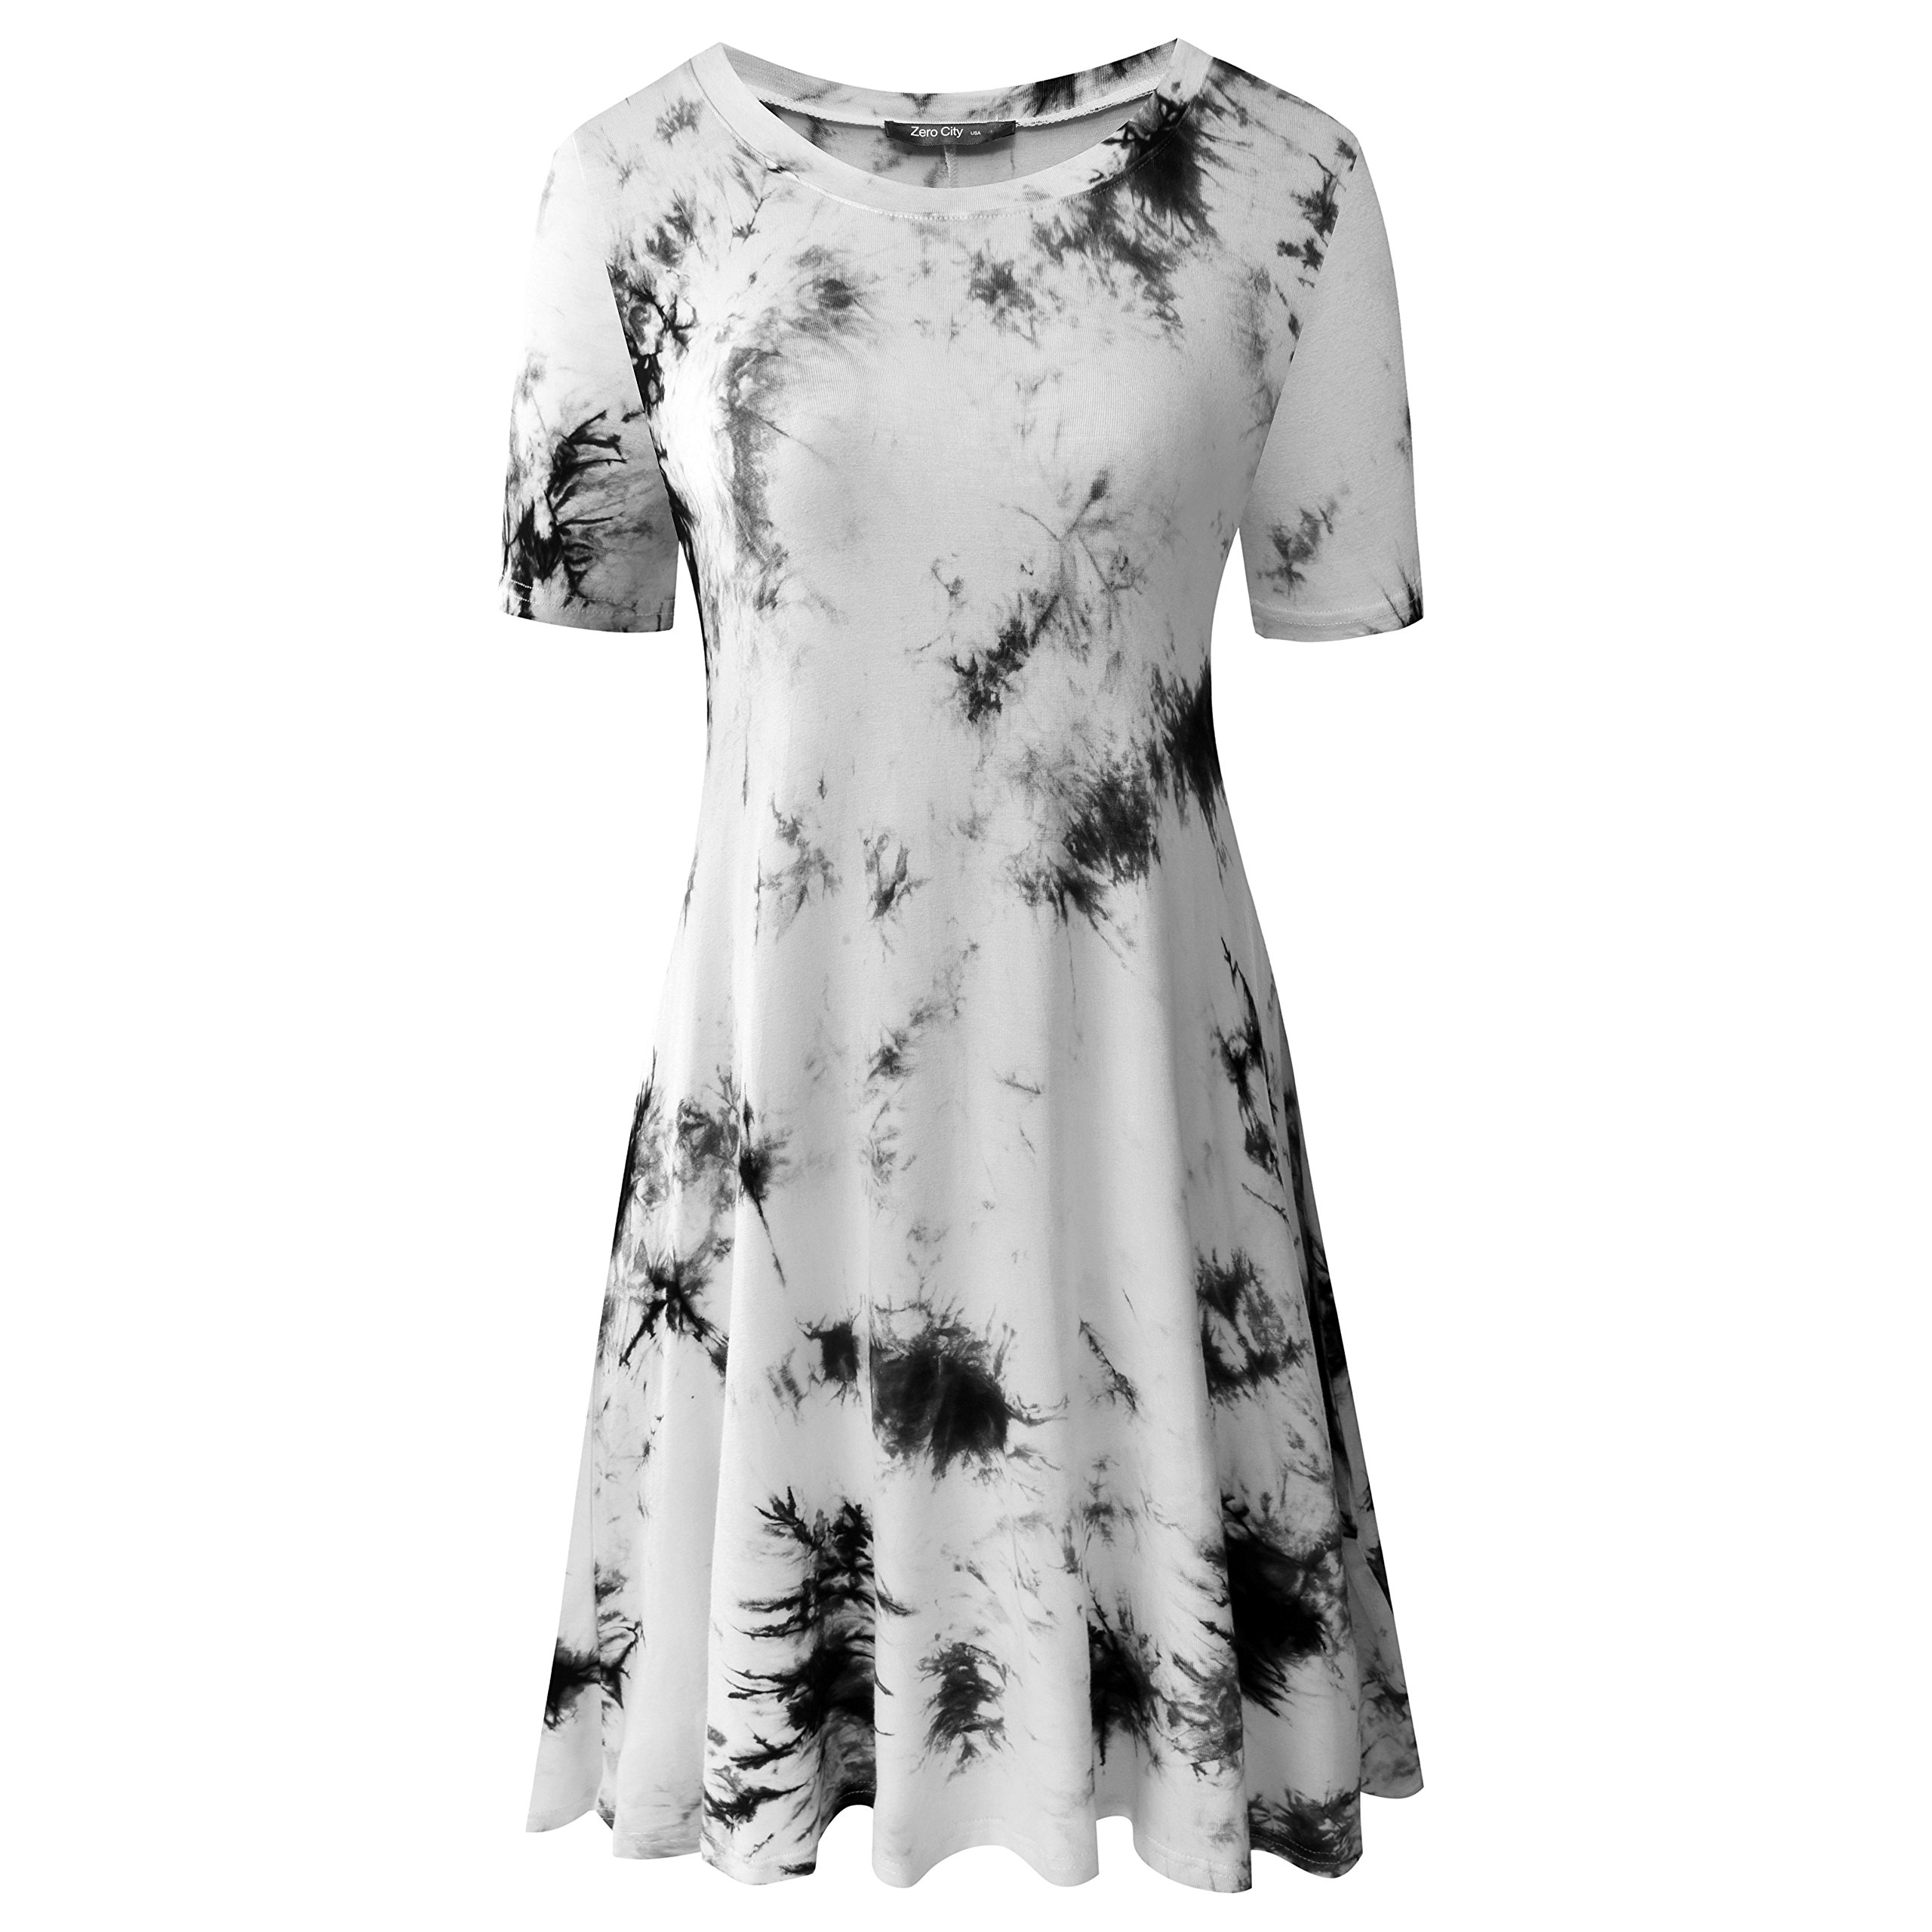 Zero City Women's Short Sleeve Casual Tie Dye Cotton Swing Tunic T-shirt Dresses X-Large Ze2010_black